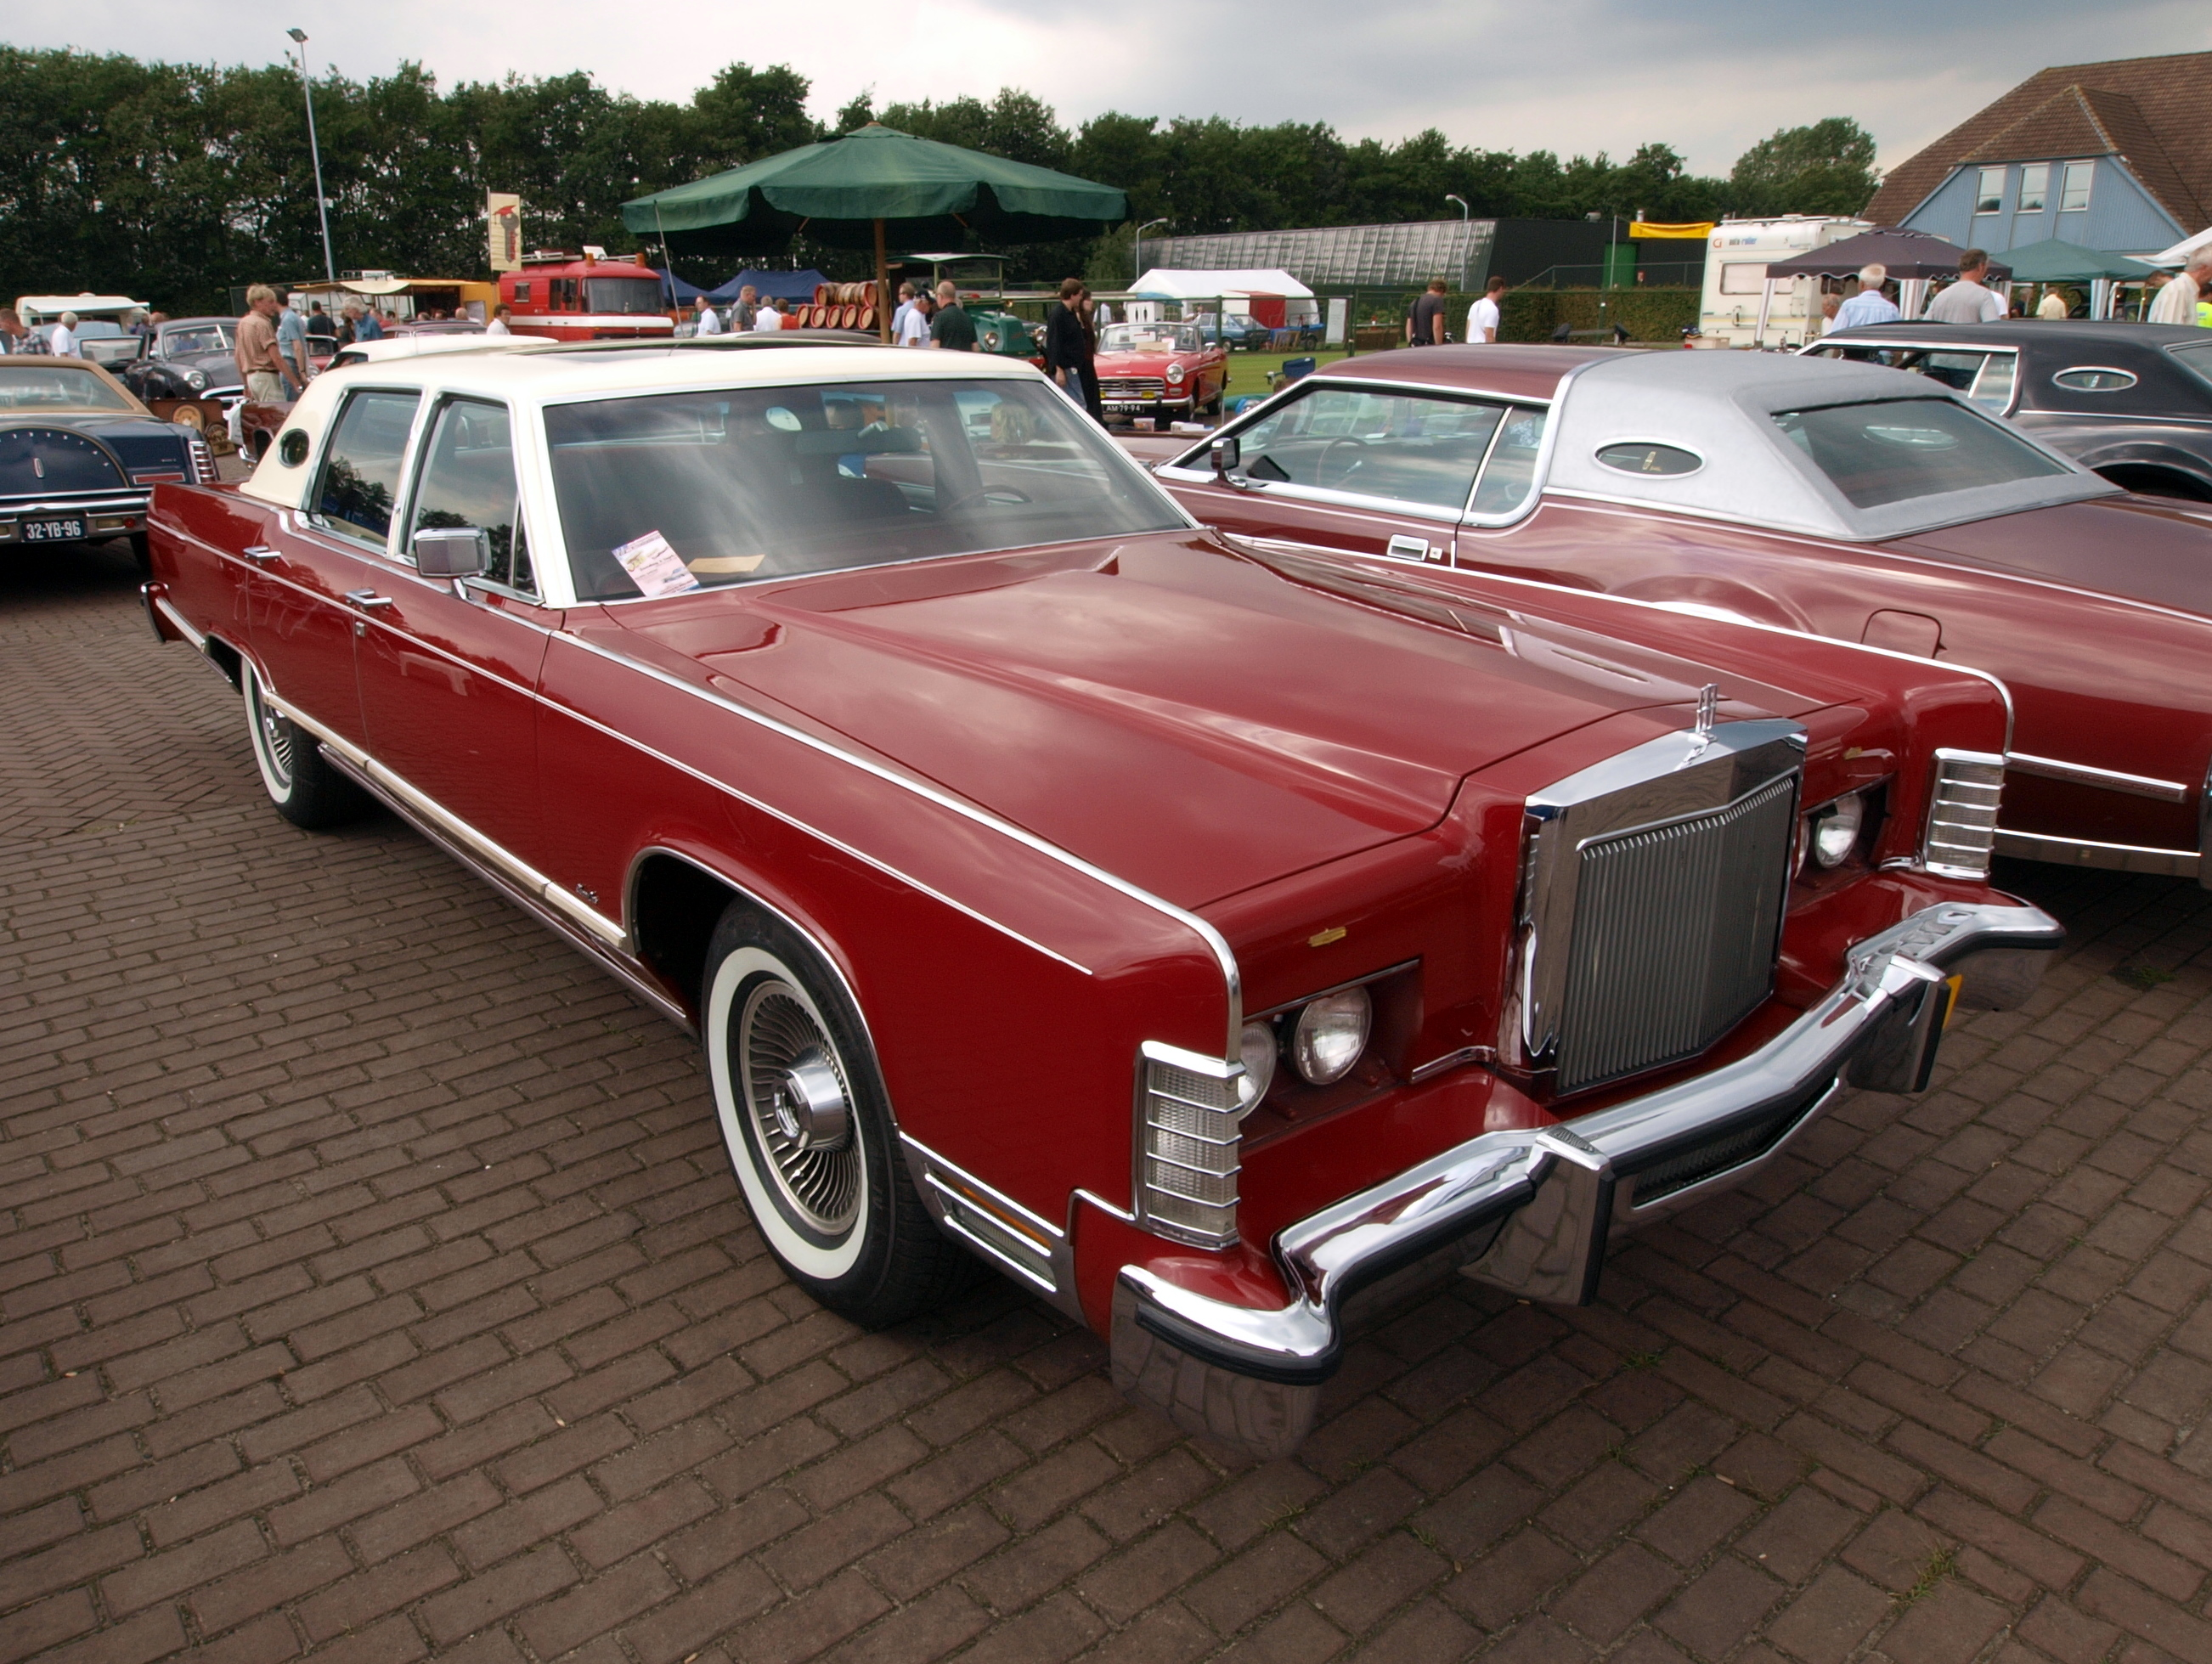 file red lincoln continental jpg wikimedia commons. Black Bedroom Furniture Sets. Home Design Ideas